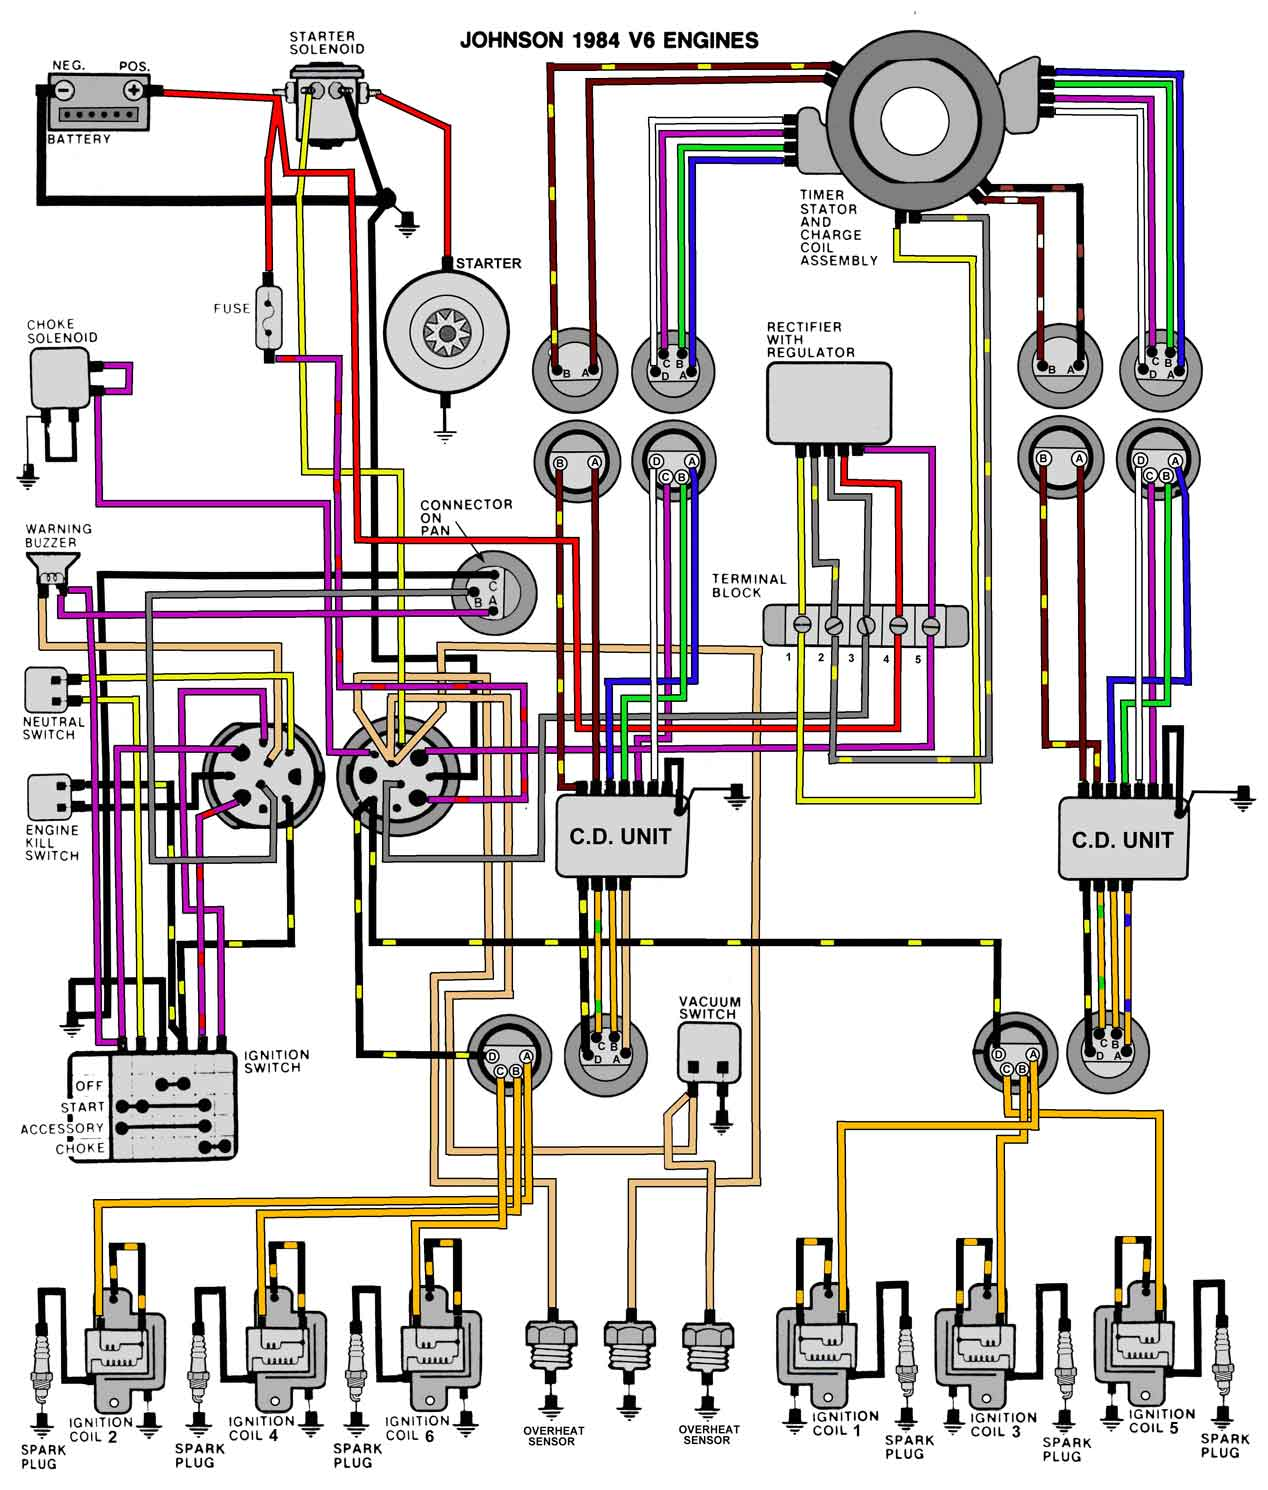 84_V6 mastertech marine evinrude johnson outboard wiring diagrams wiring diagram for johnson outboard motor at mifinder.co